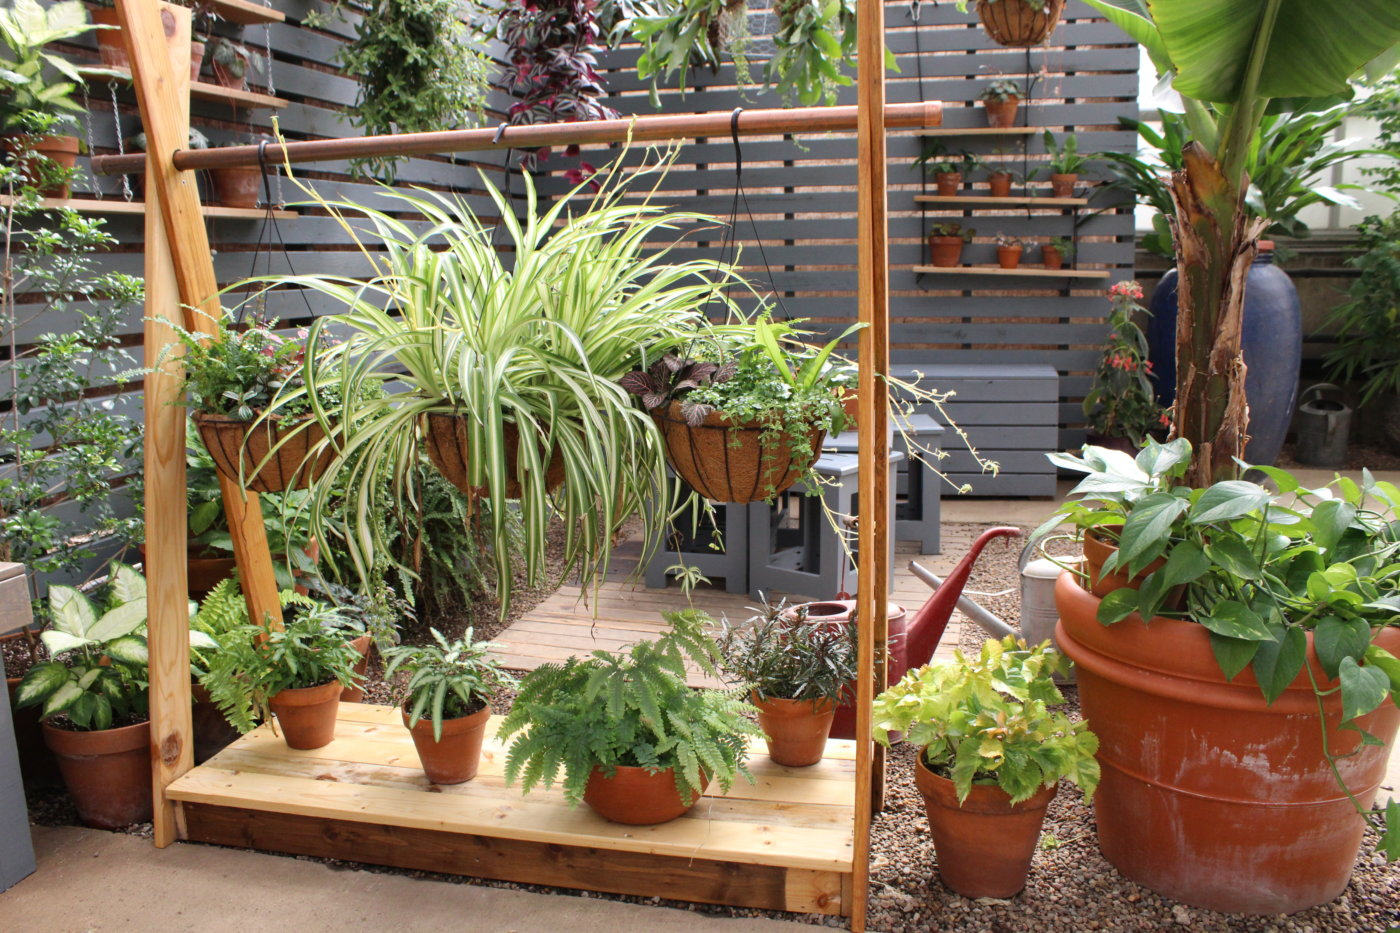 Plants in pots hanging and sitting on a wooden structure.